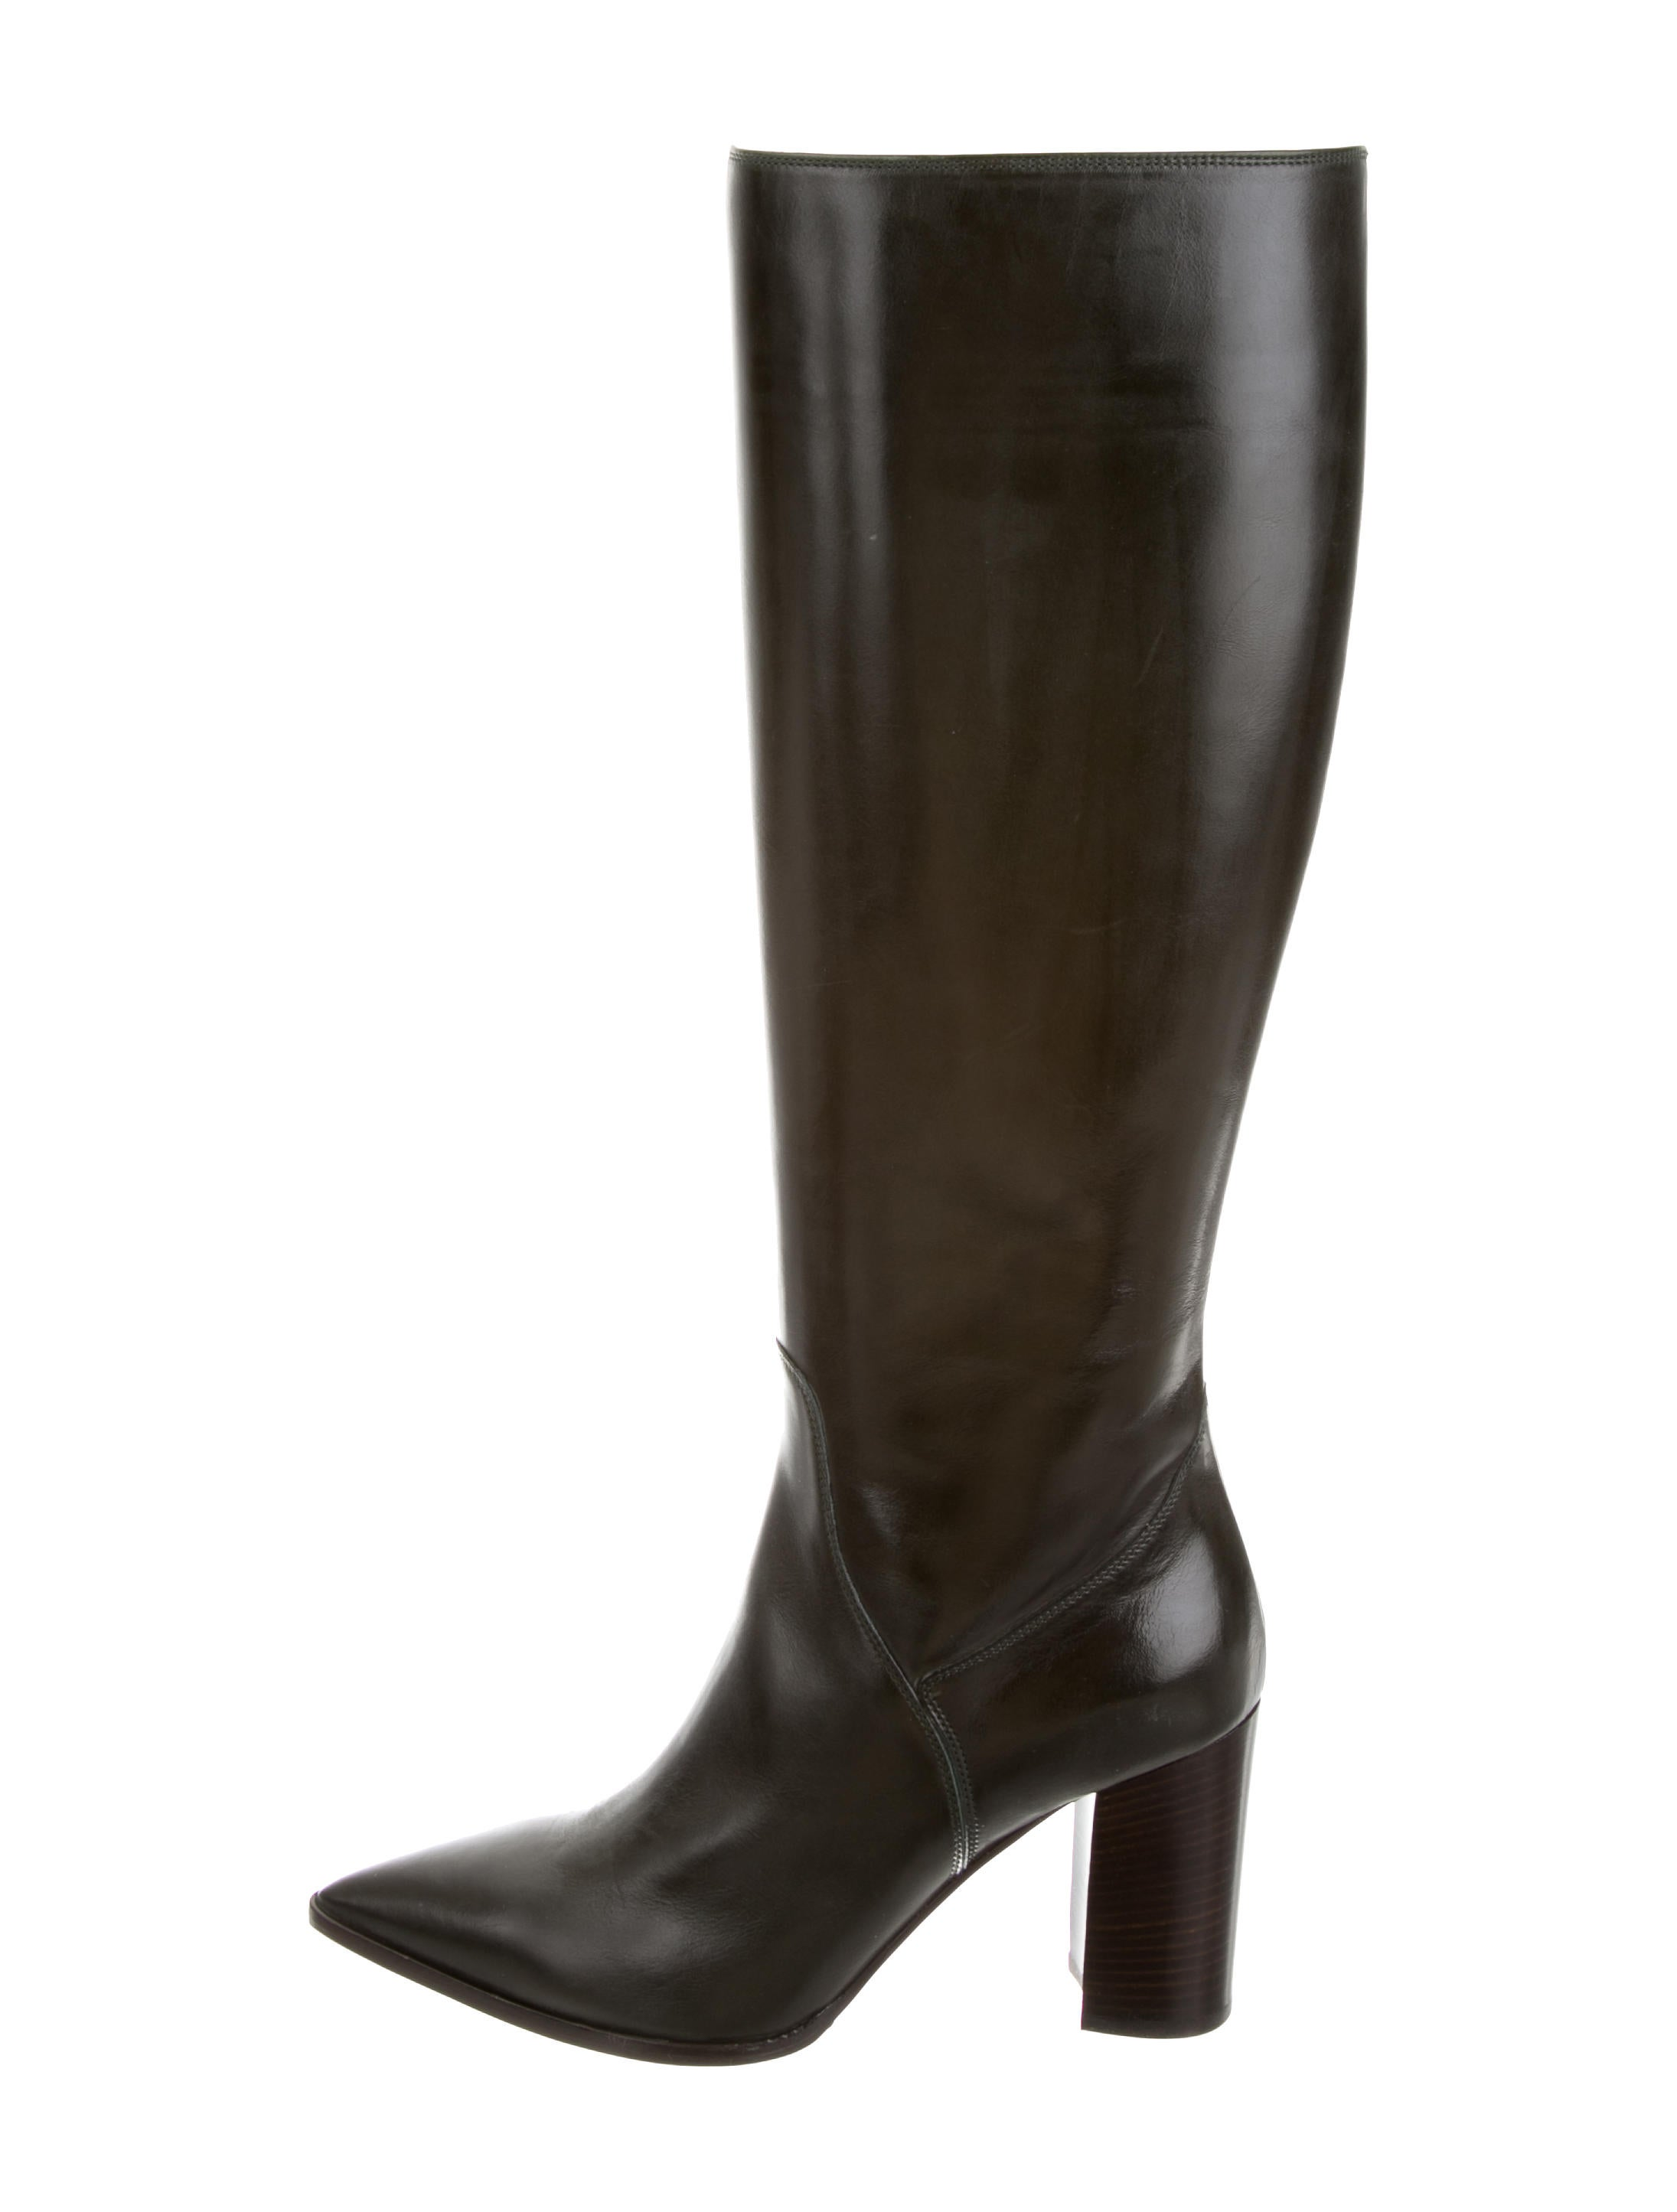 clearance shop for sale cheap real Fratelli Rossetti Leather Knee-High Boots w/ Tags 100% authentic online buy cheap good selling free shipping clearance EfI6qJ657I